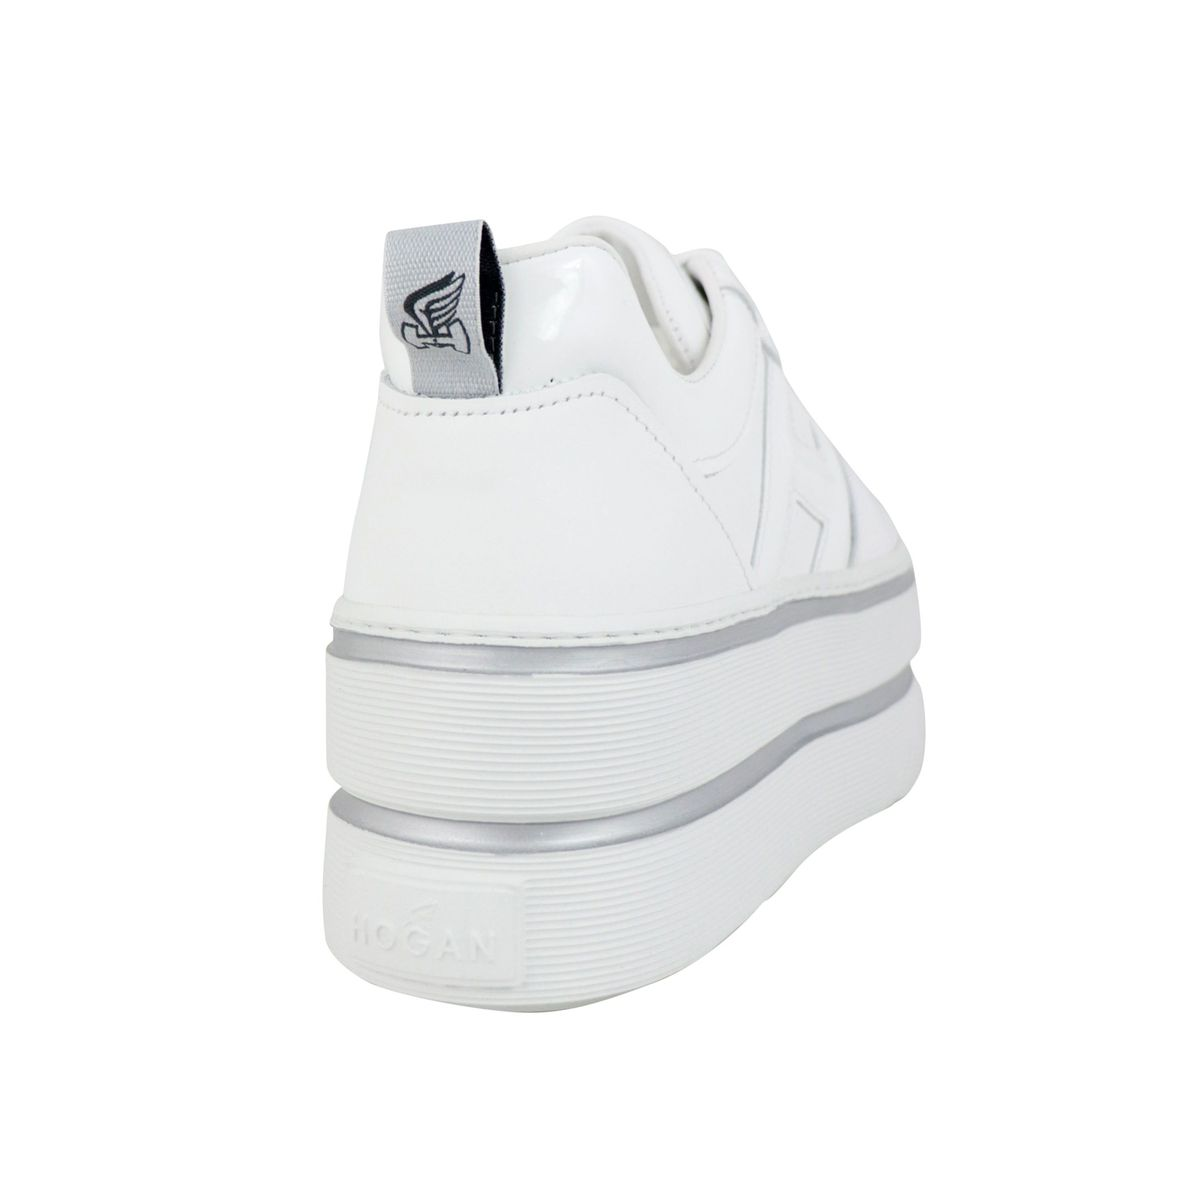 Maxi sneakers in leather with H in patent leather White Hogan